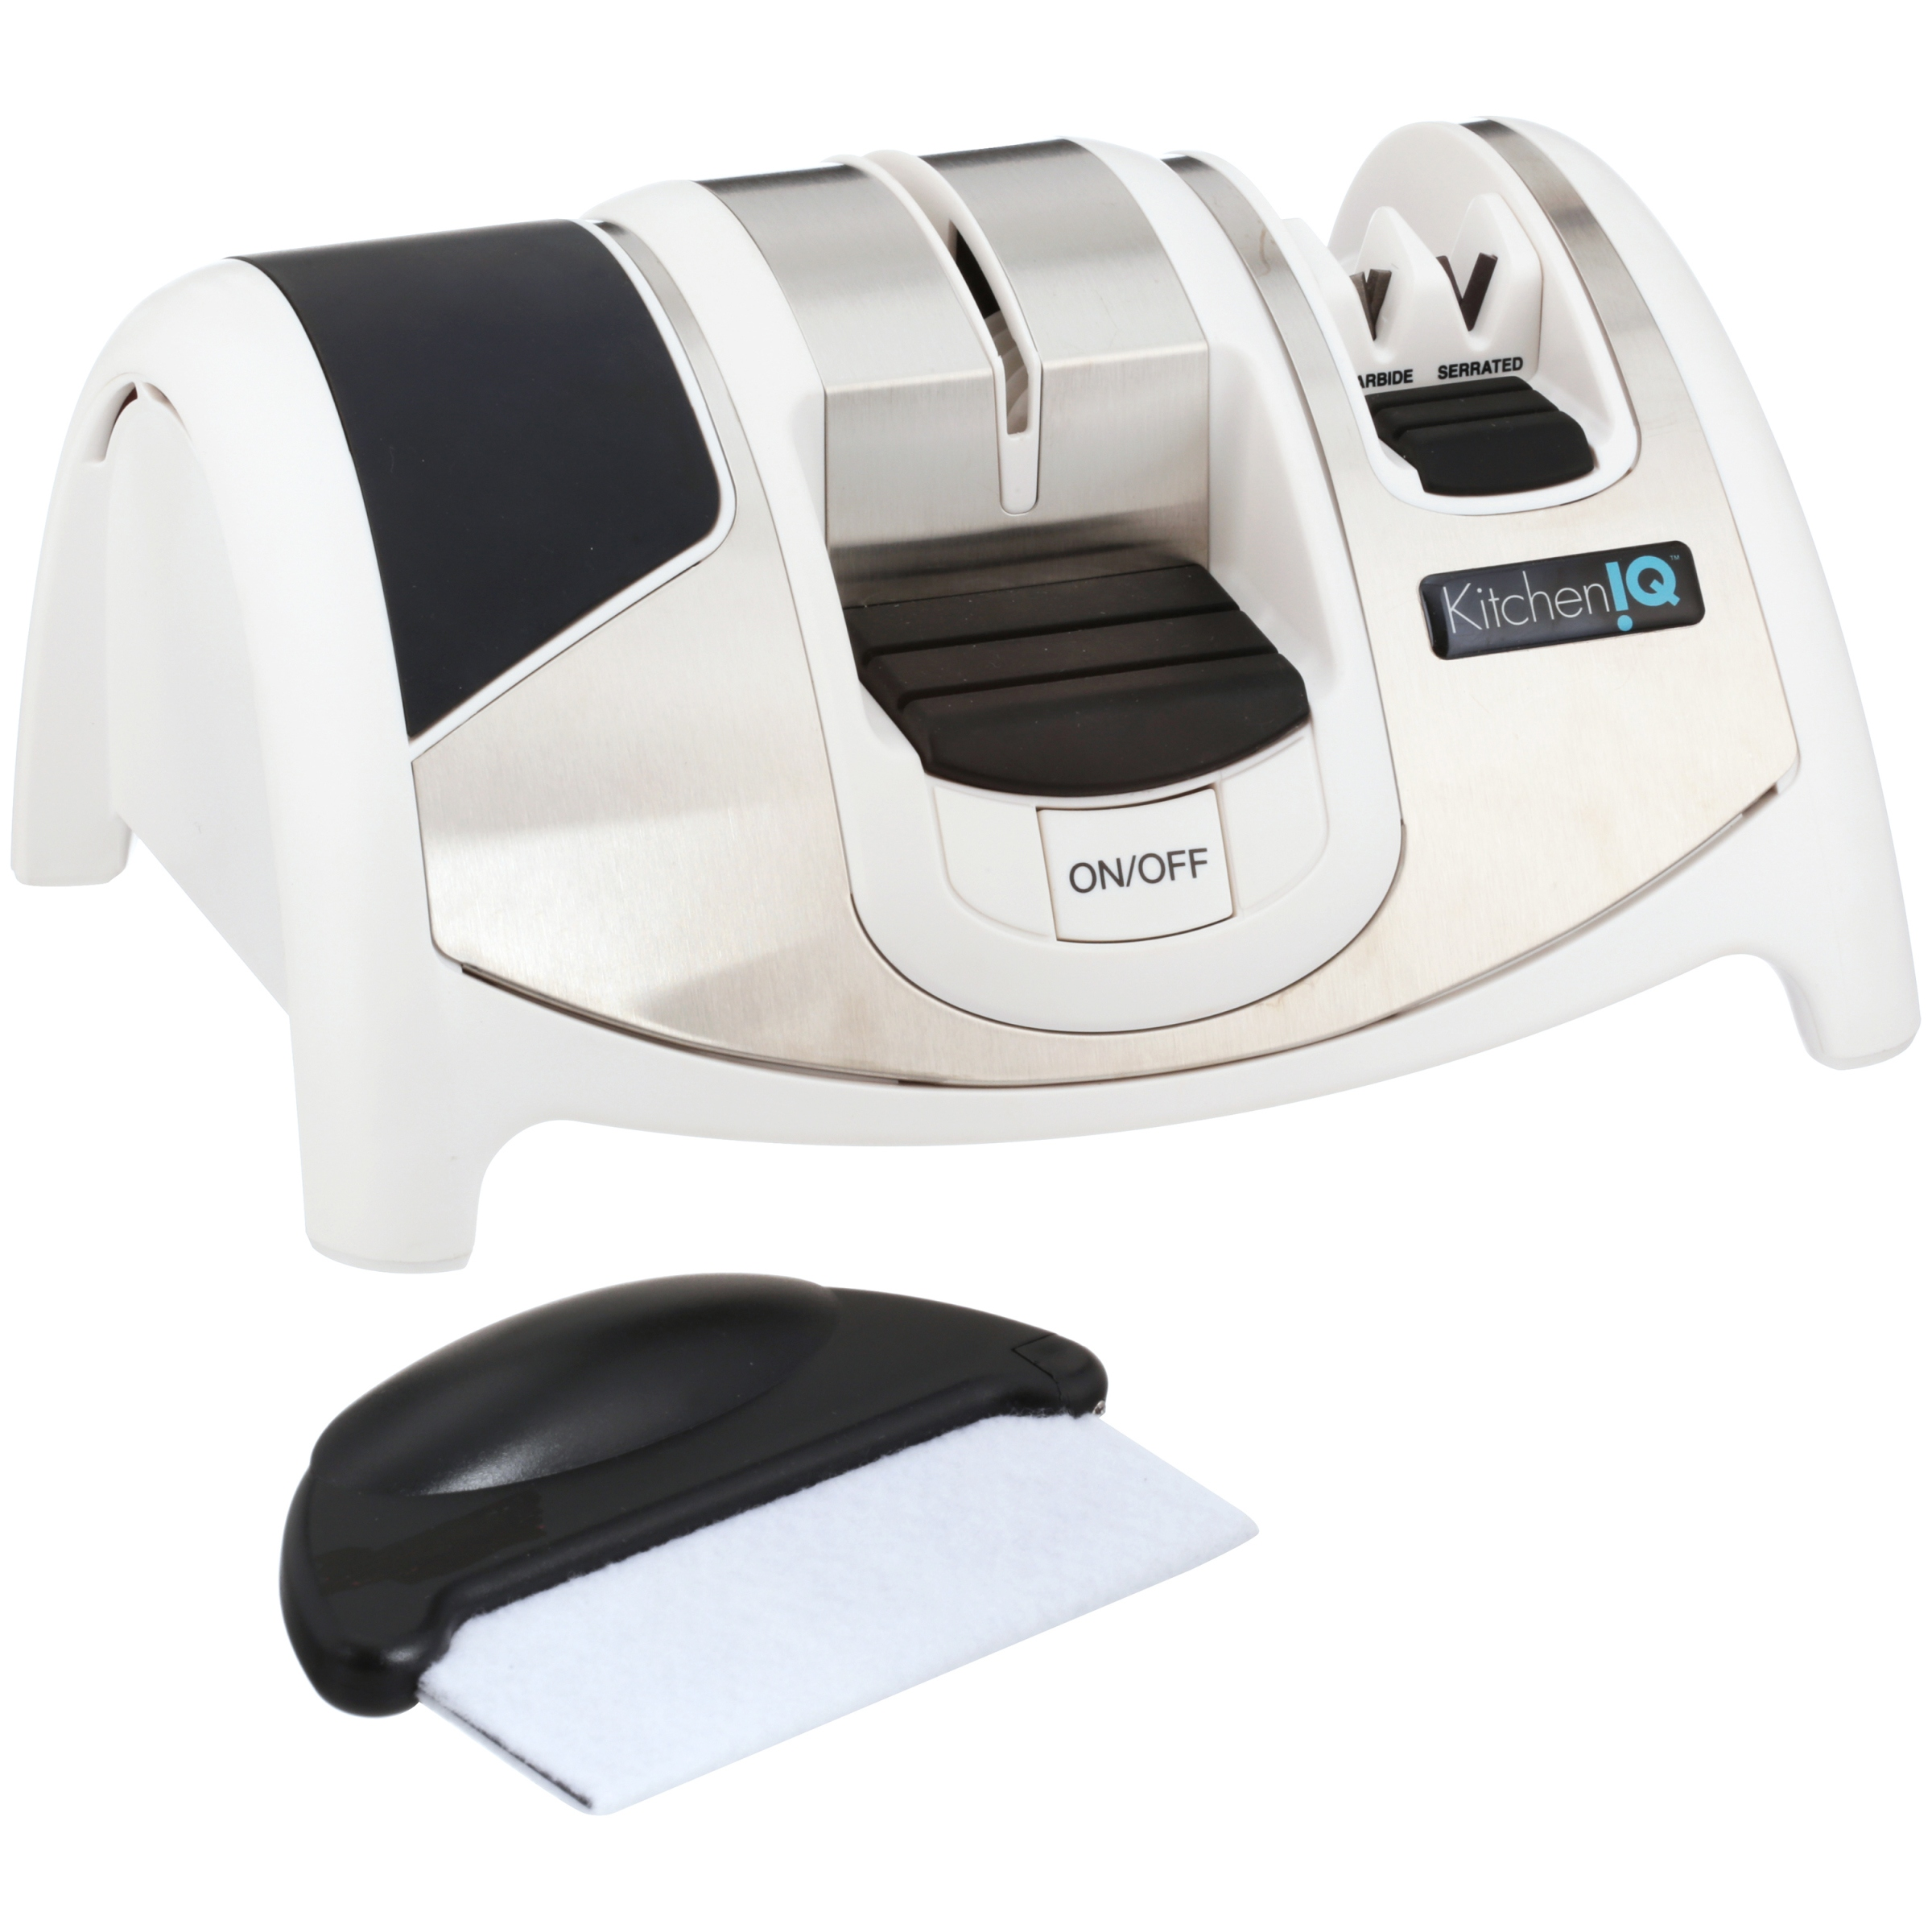 Kitchen IQ™ Ceramic Edge Gourmet™ Electric Knife Sharpener - Walmart.com